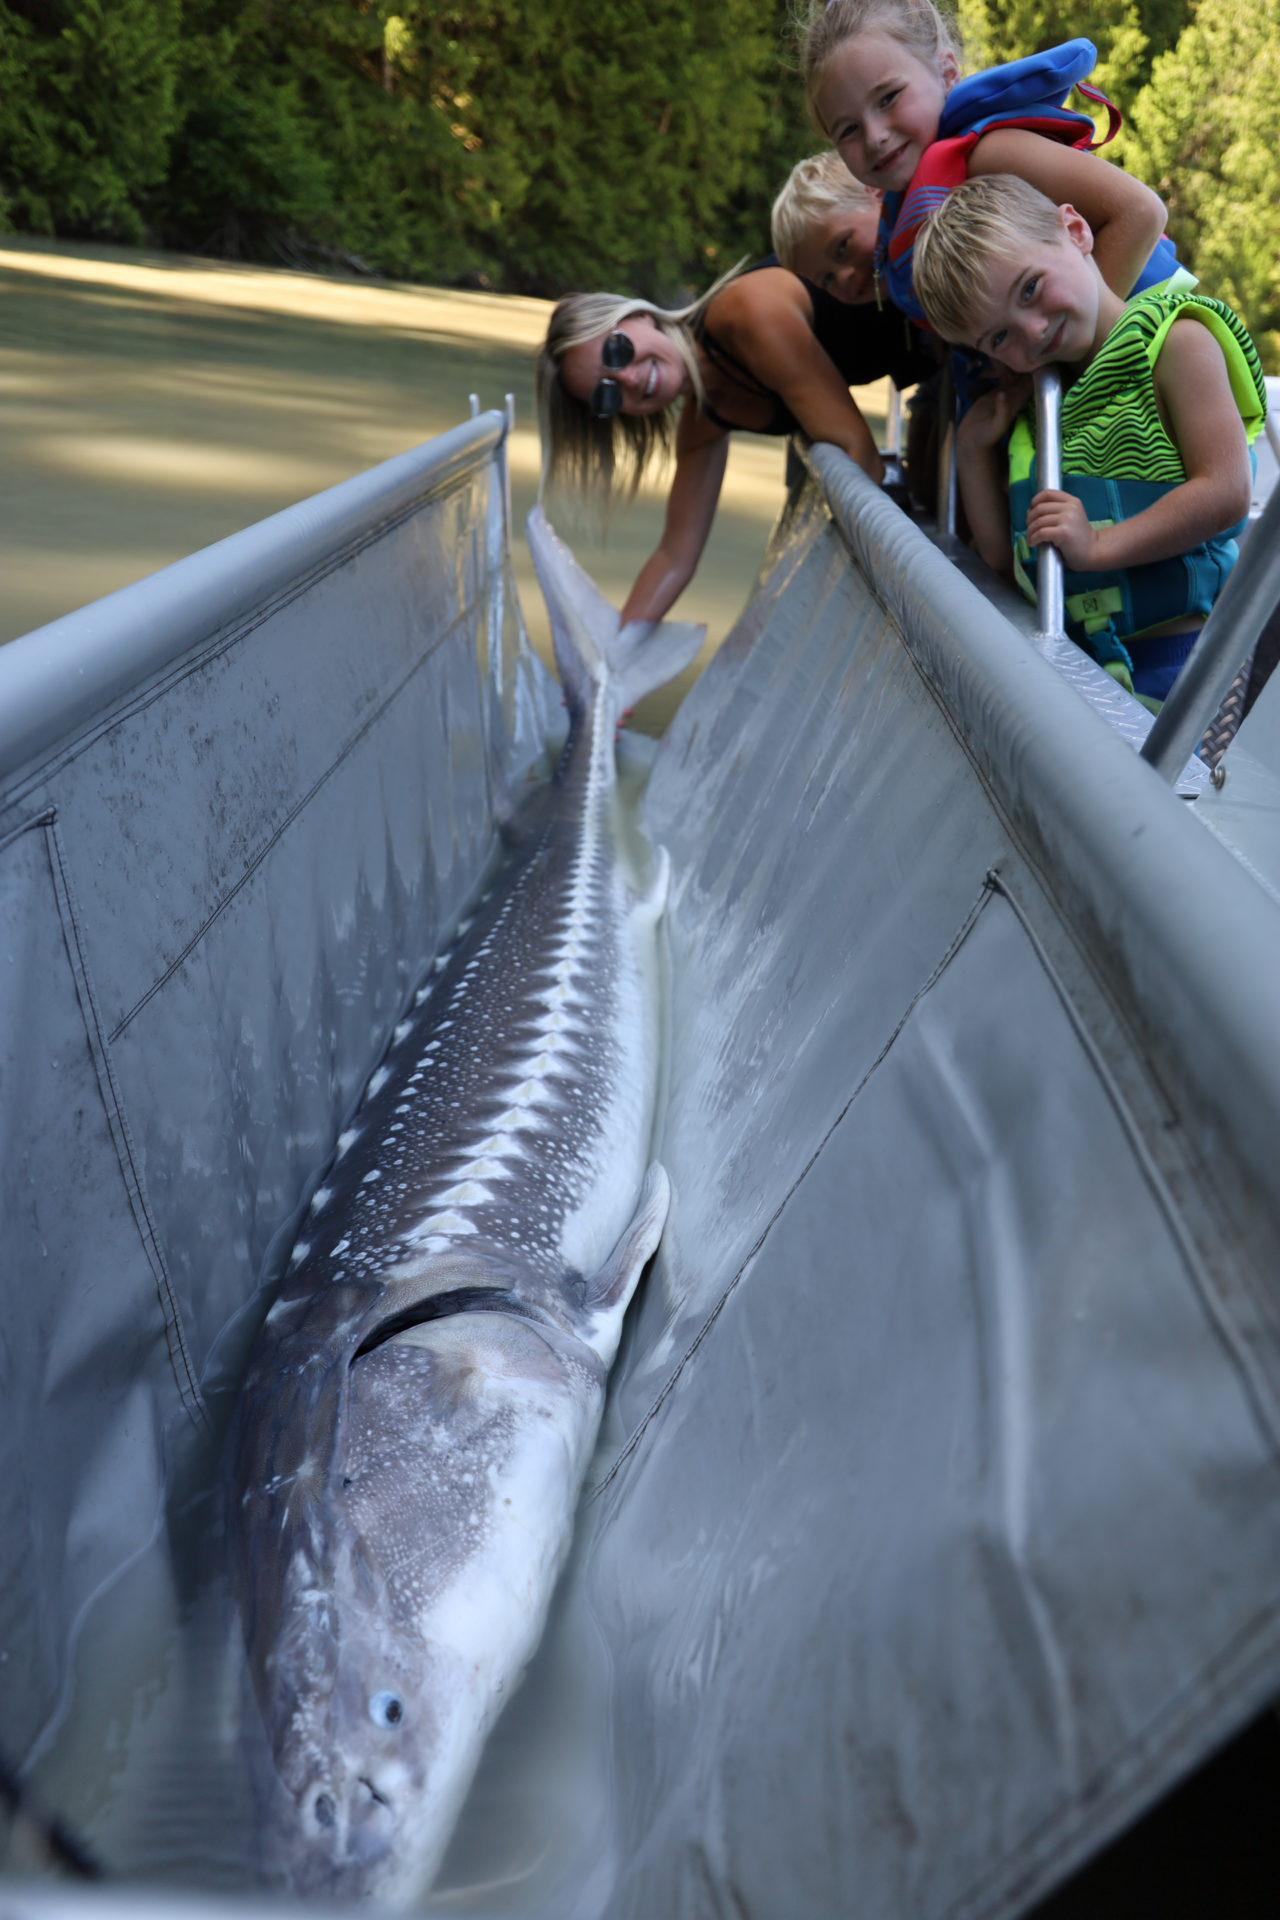 The Sturgeon Conservation Workshop was held to help educate the public about sturgeon and their dire need for protection.